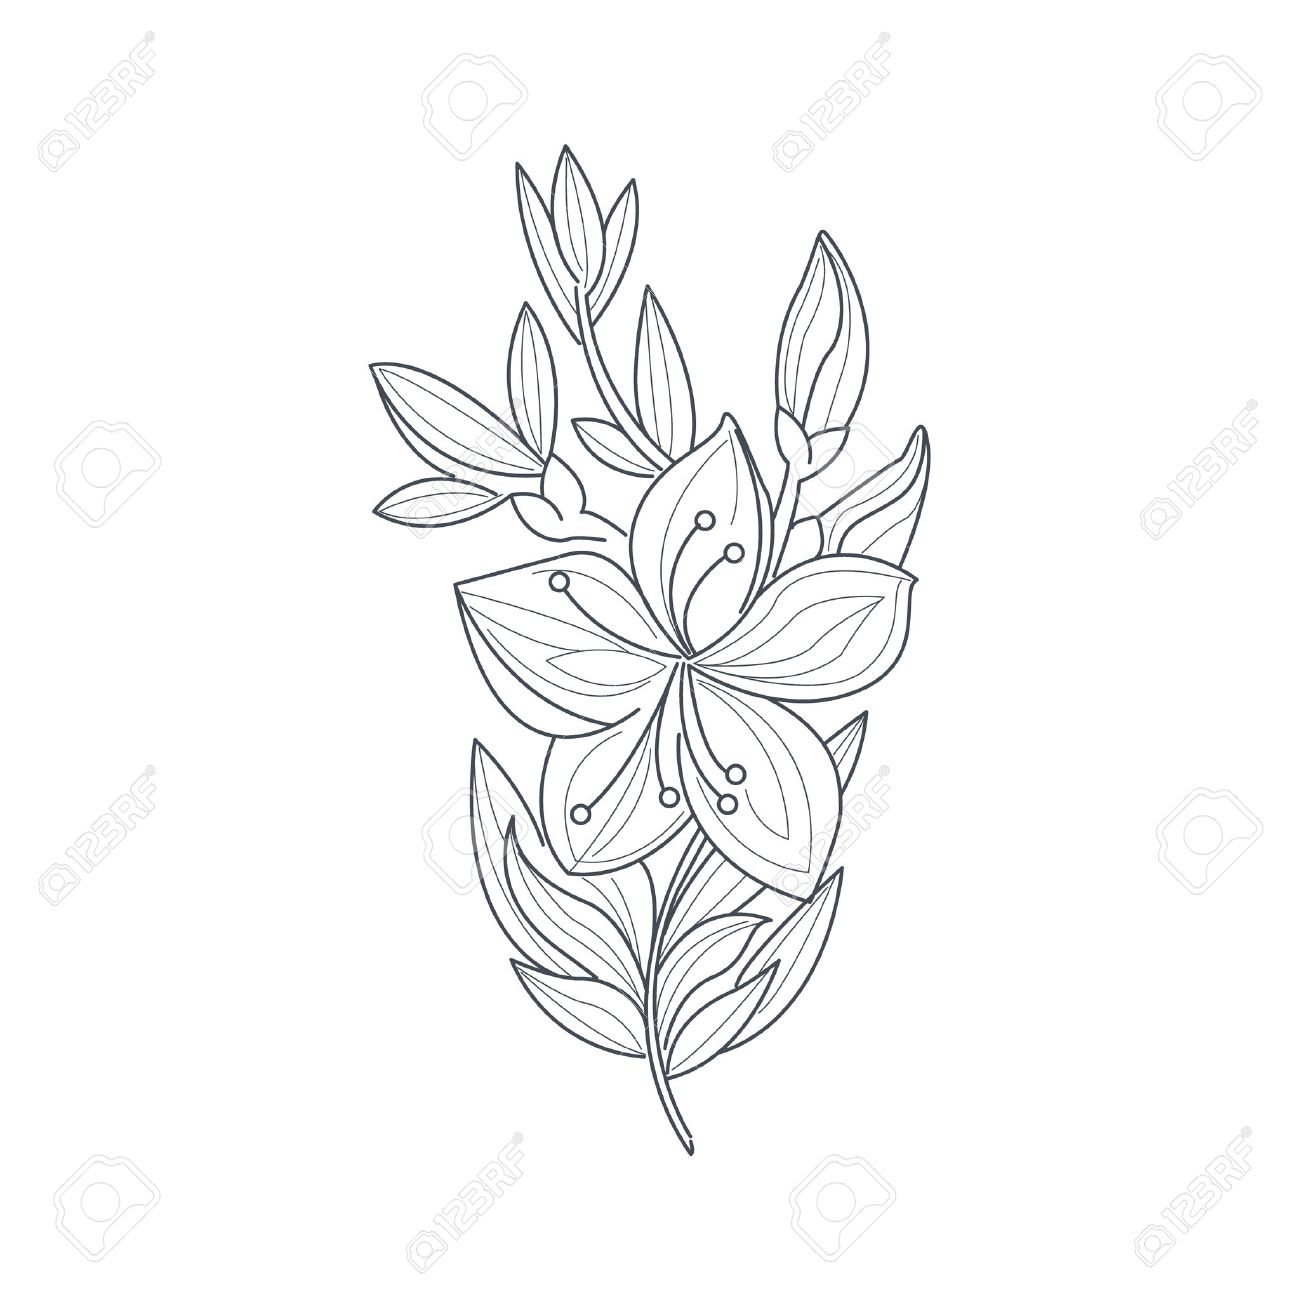 Jasmine Flower Monochrome Drawing For Coloring Book Hand Drawn Vector Simple Style Illustration - 59064651